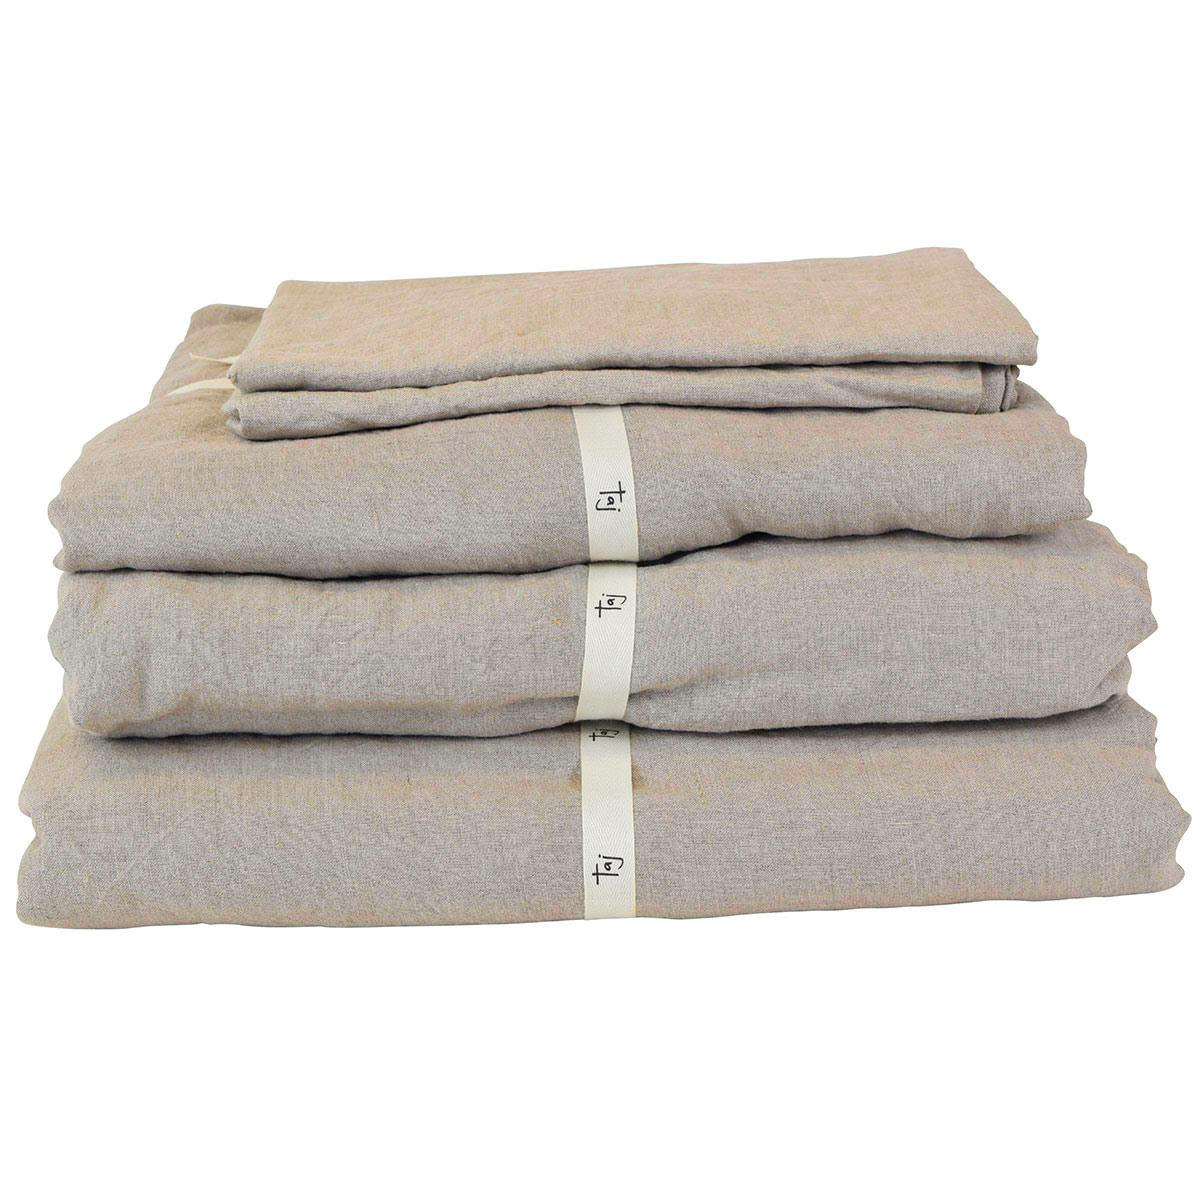 Taj French Linen Fitted Sheet, King, Natural